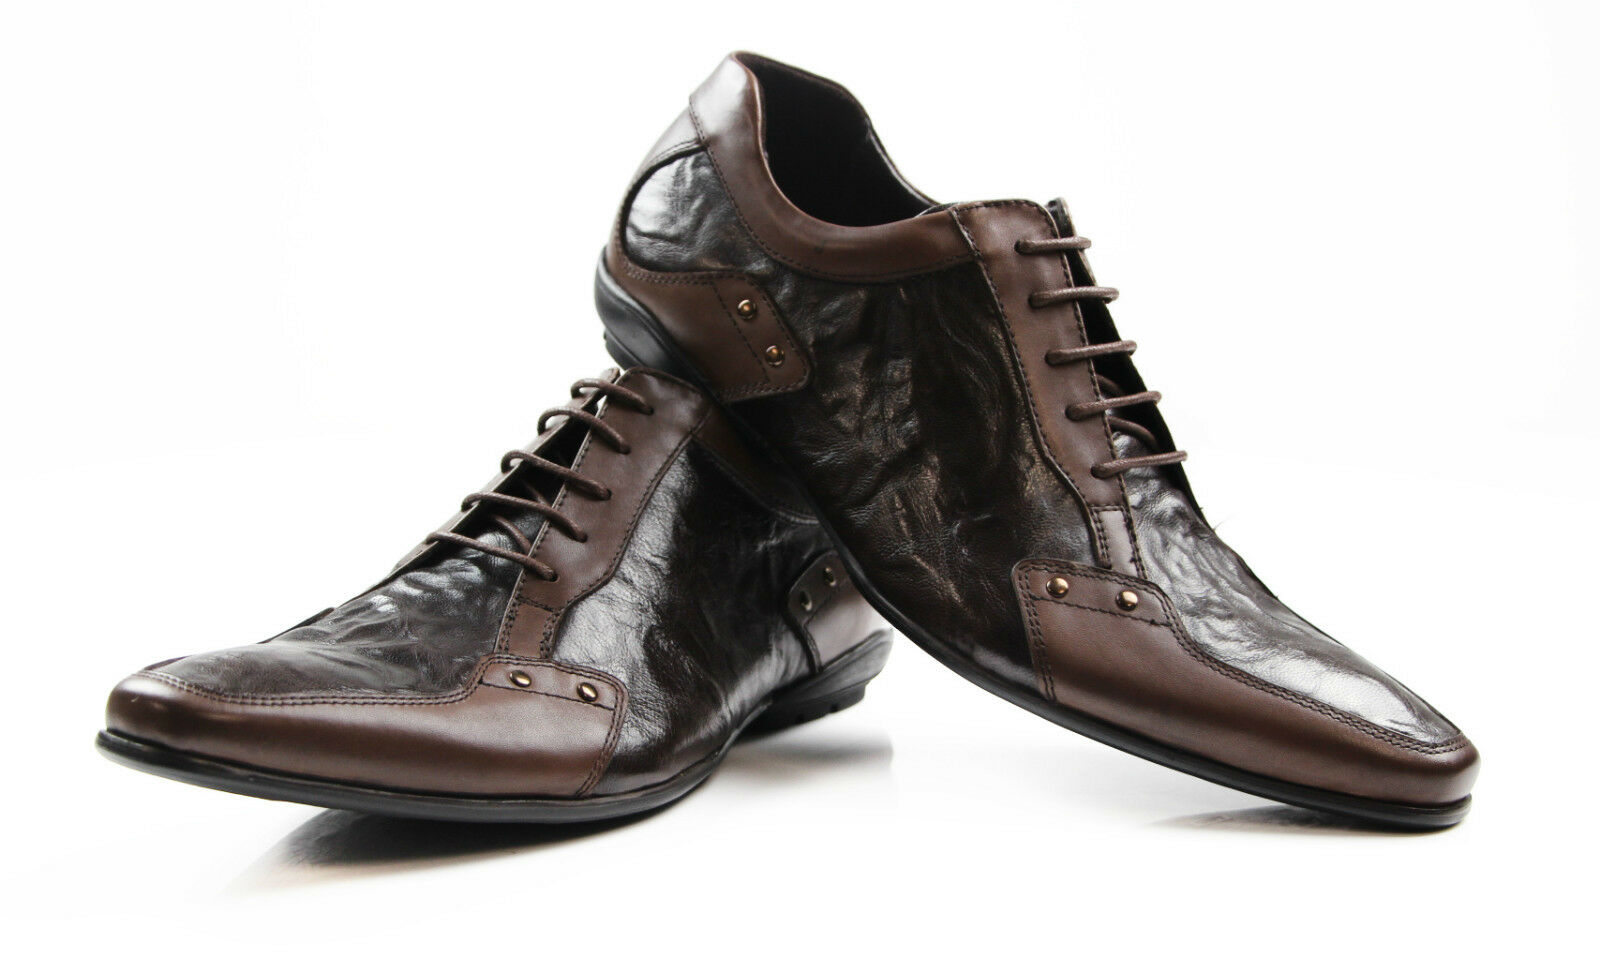 MENS ZASEL braun LEATHER schuhe LACE UP WORK FORMAL CASUAL herren DRESS schuhe